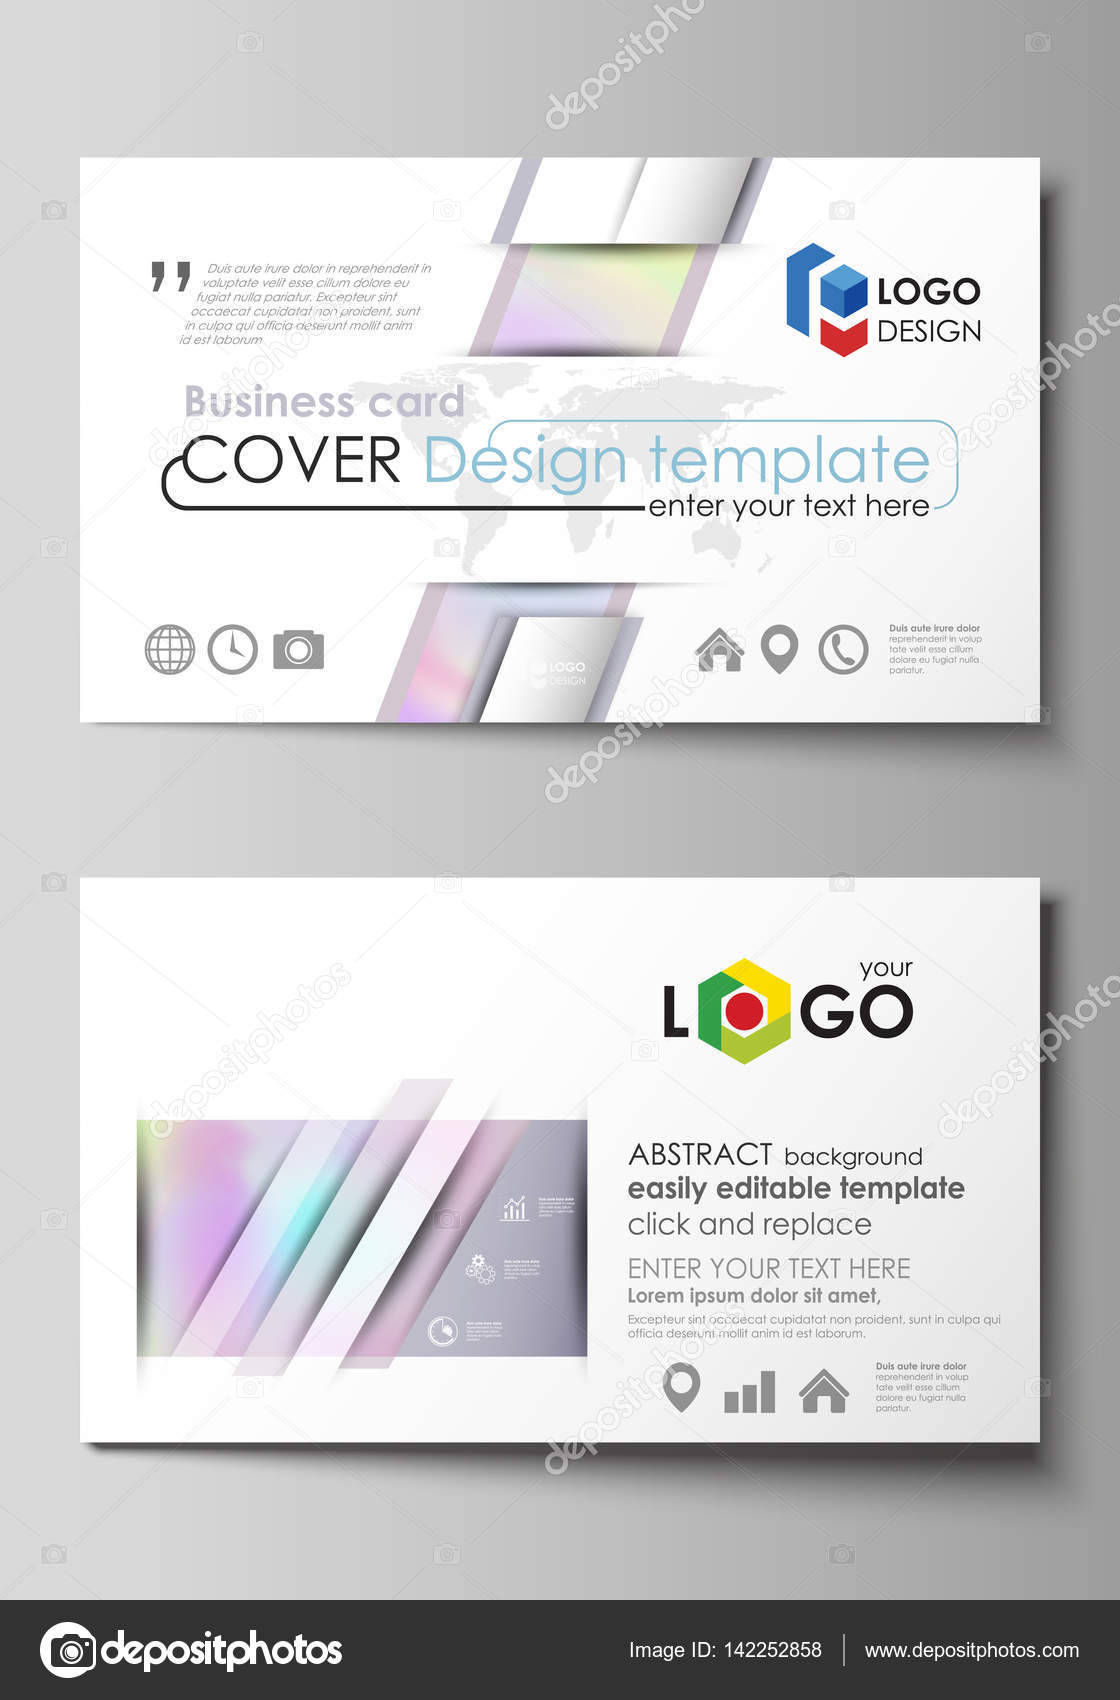 Business card templates easy editable layout abstract vector business card templates easy editable layout abstract vector design template hologram background in pastel colors with holographic effect magicingreecefo Images